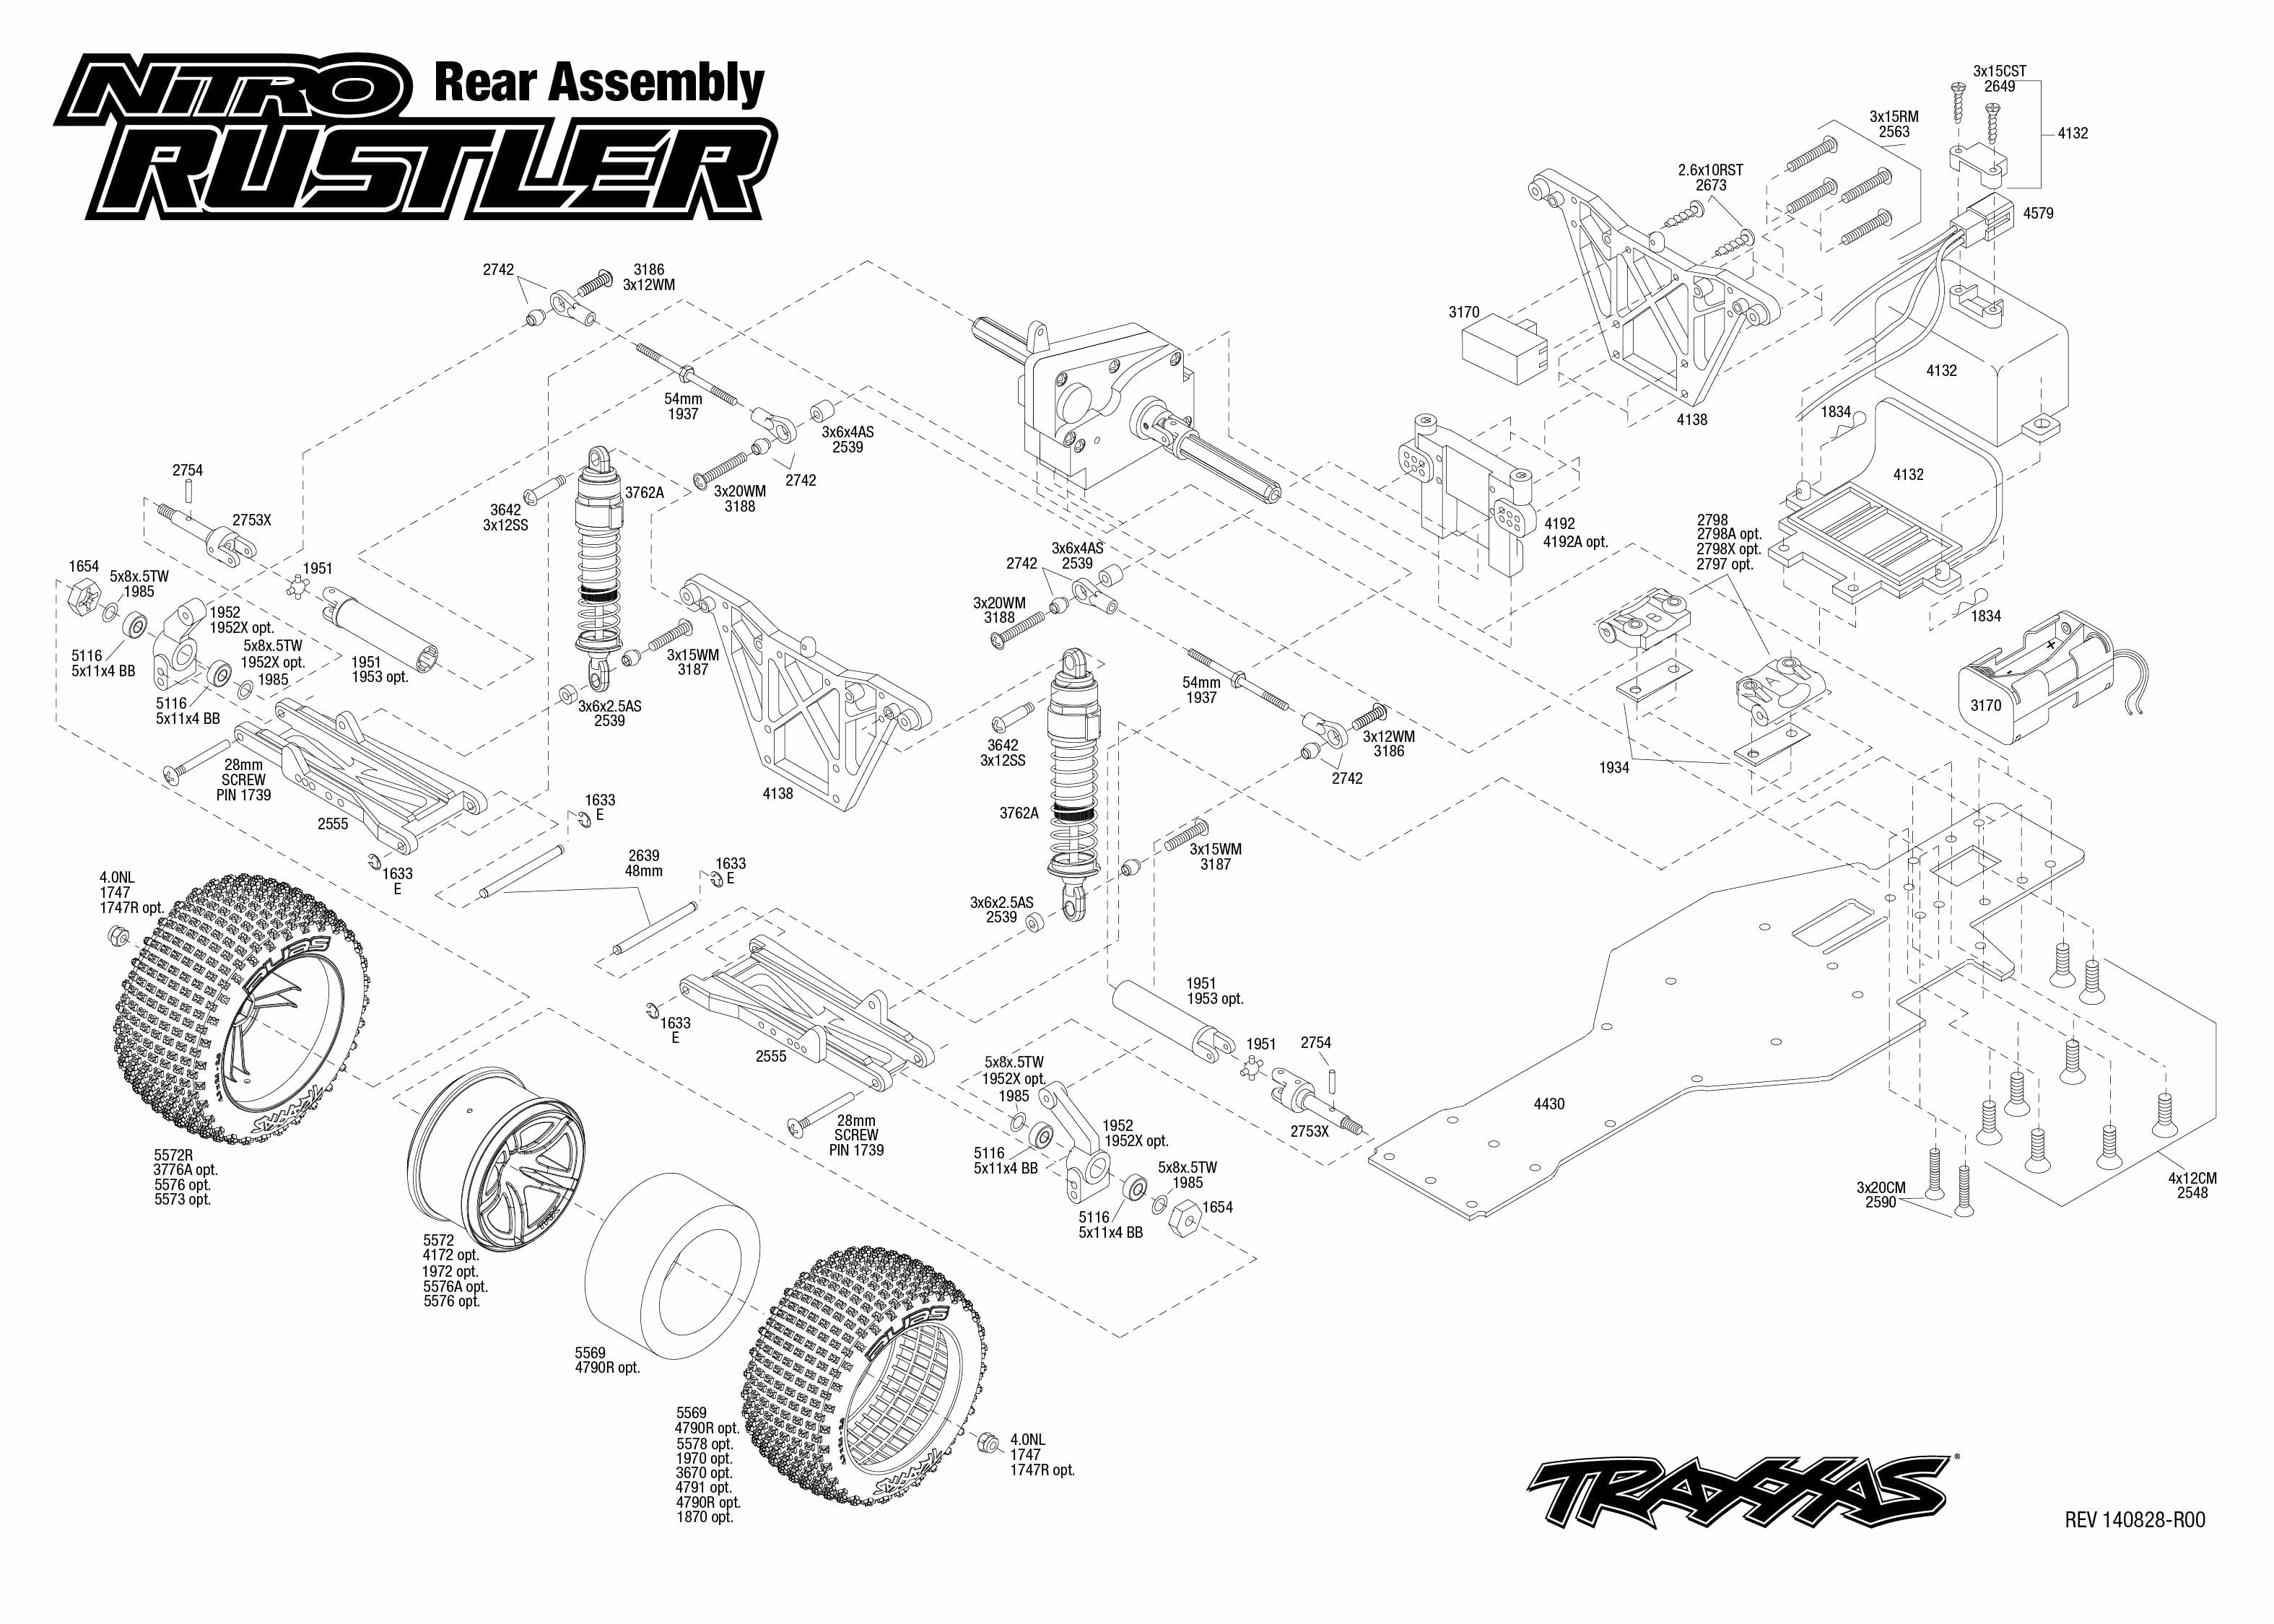 manual for traxxas nitro rustler